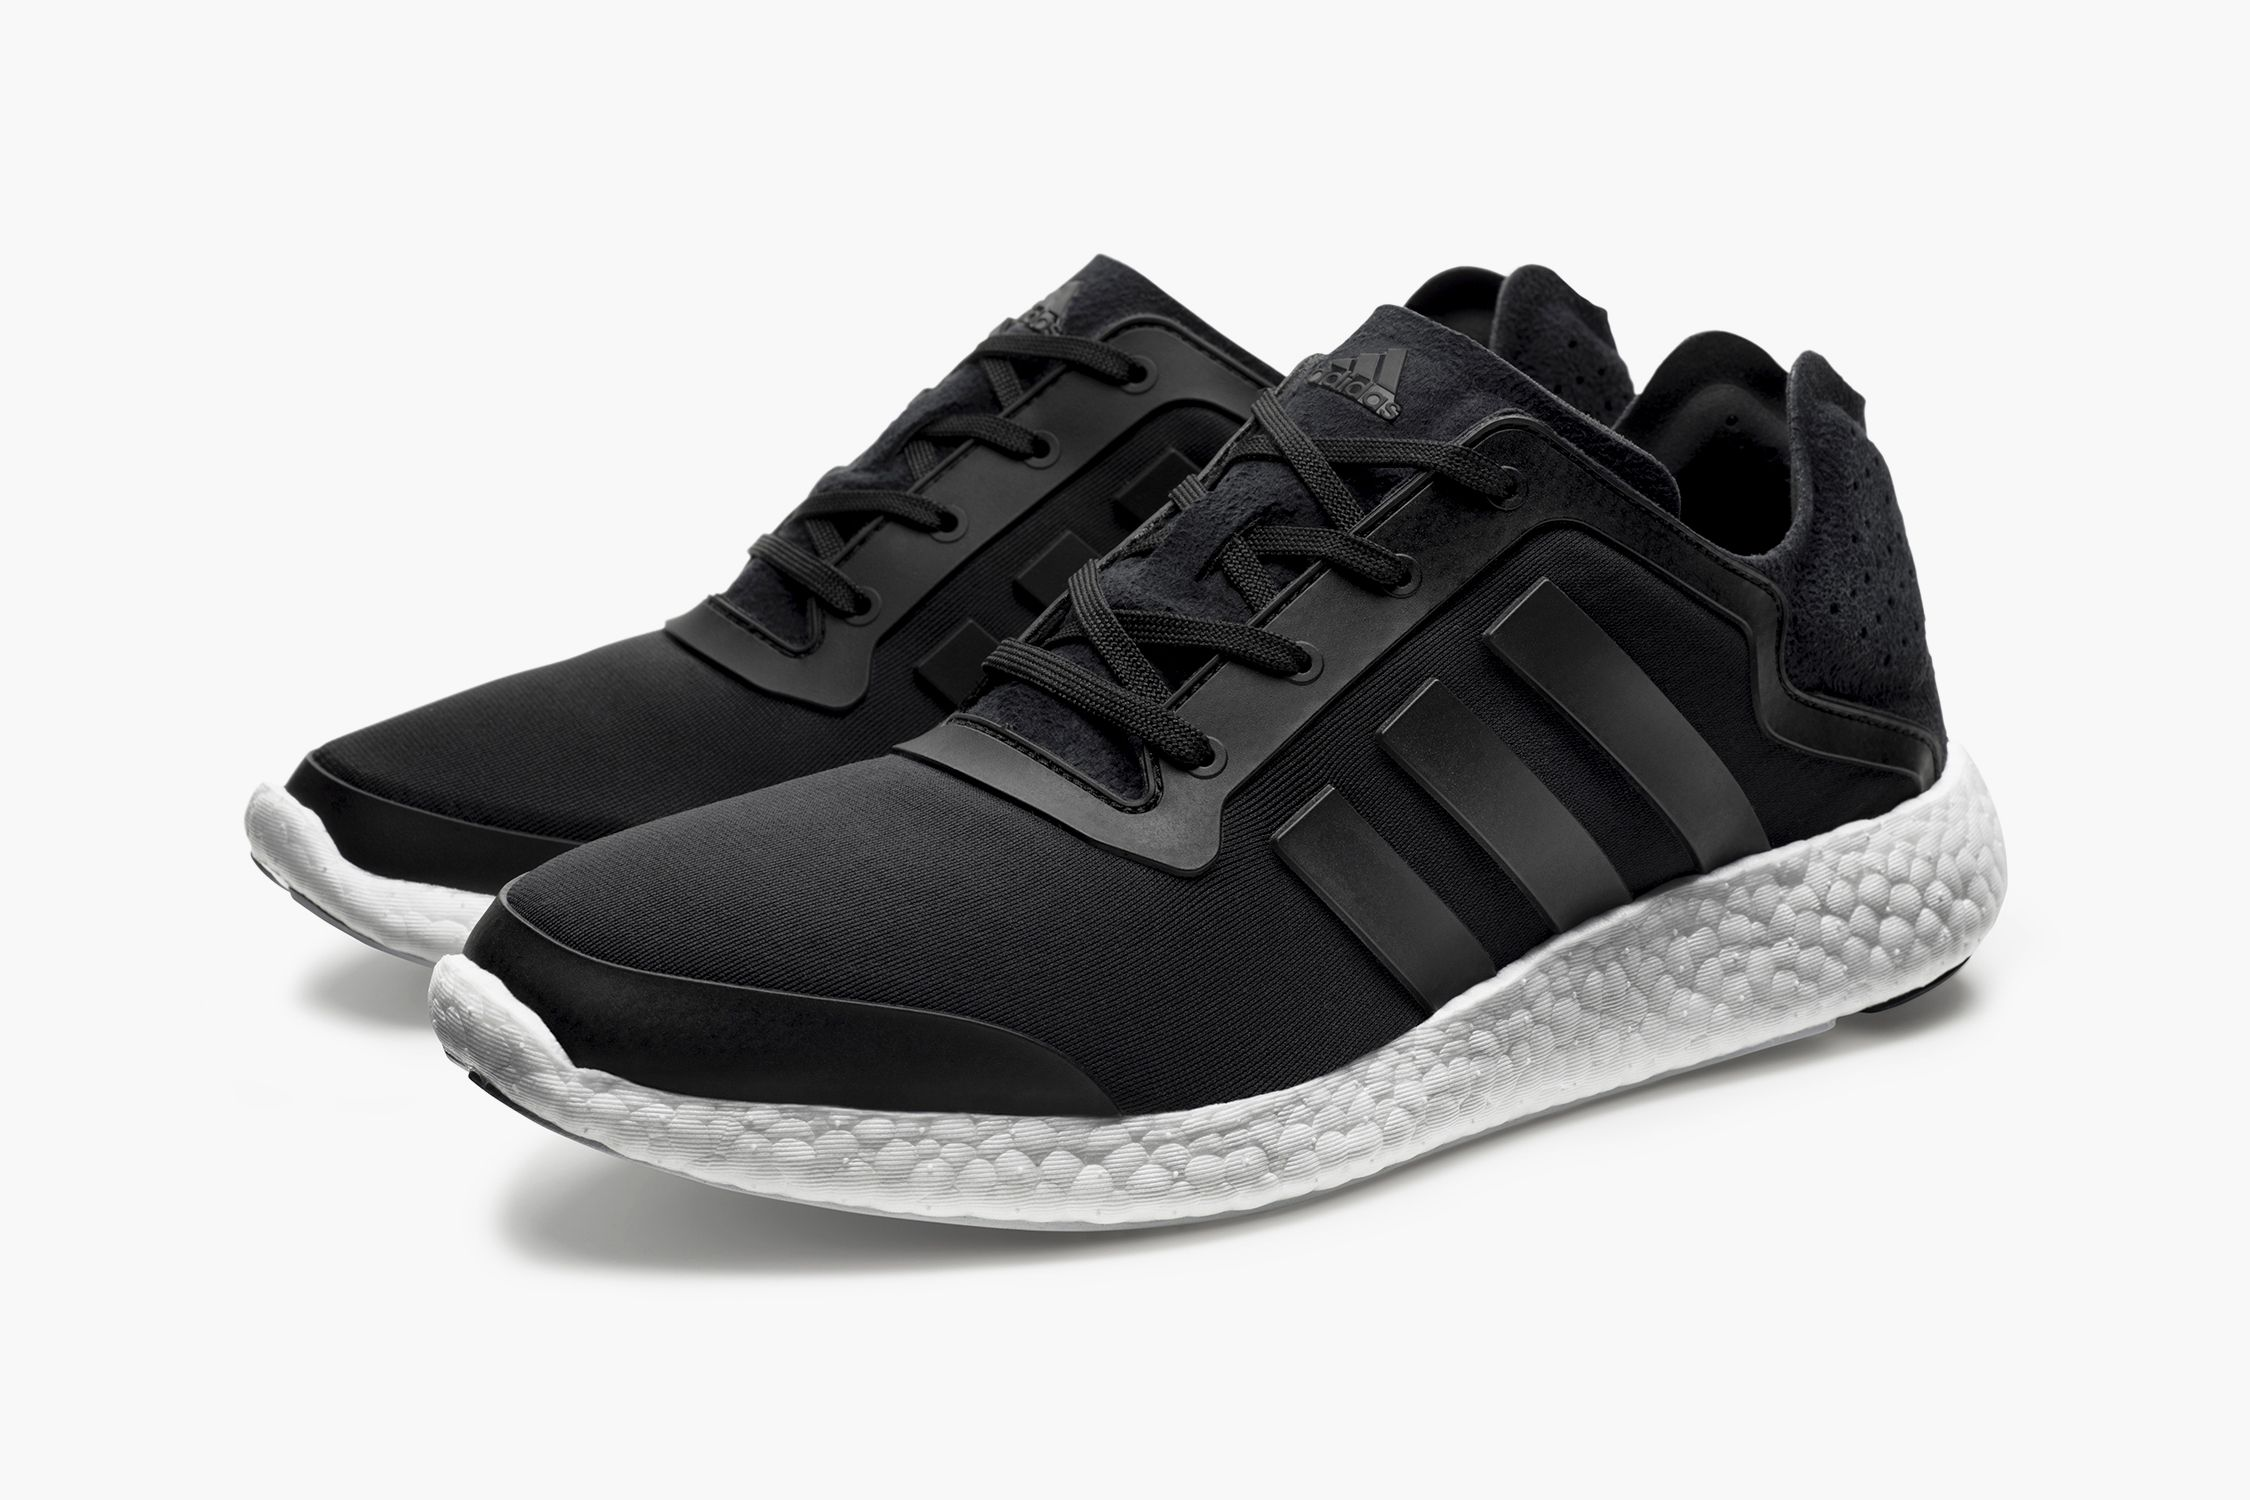 New Adidas Boost Shoes 2014